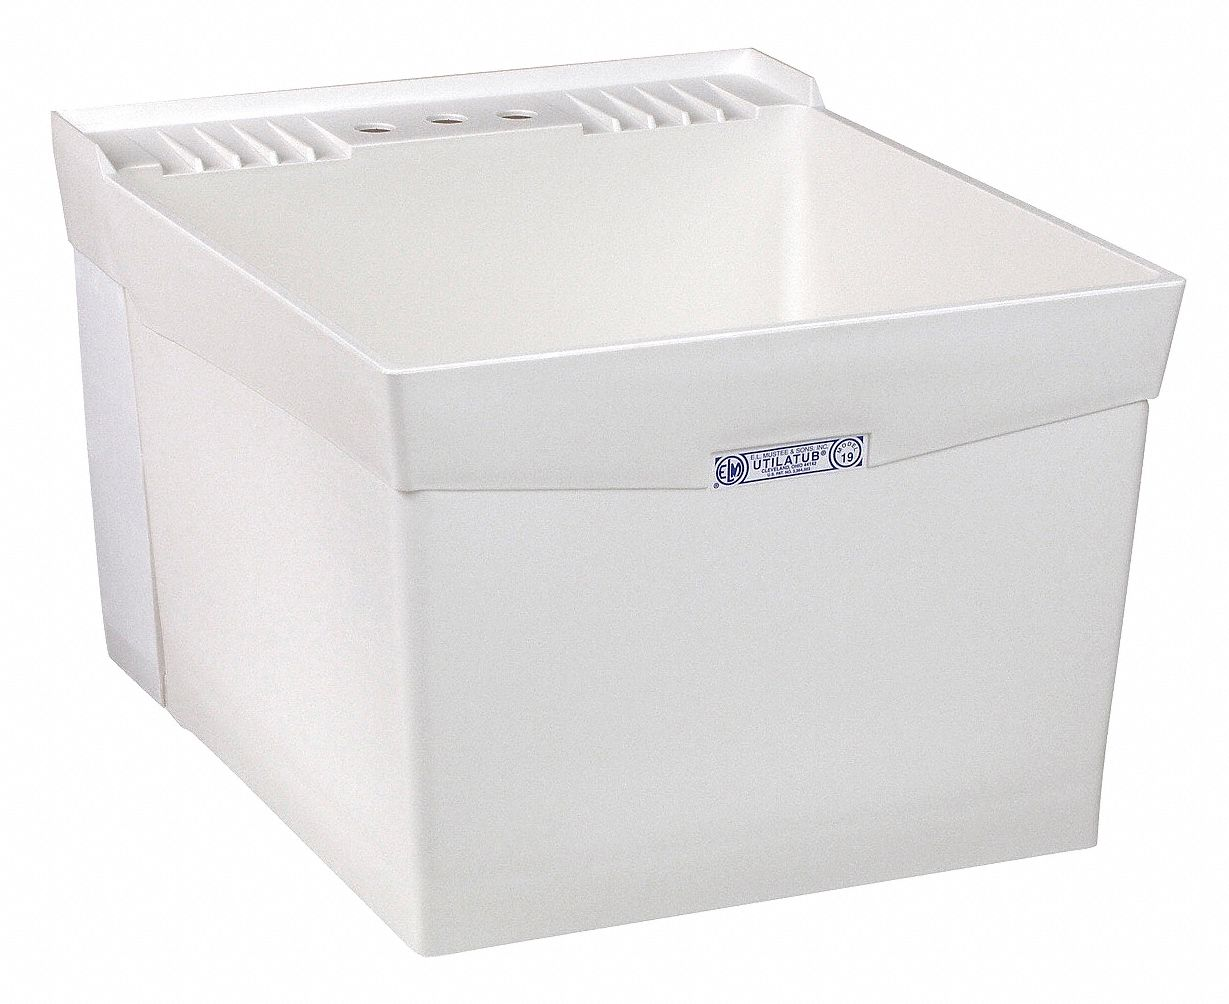 E. L. Mustee,  Utilatub Series,  24 in x 20 in,  Polypropylene,  Laundry Tub